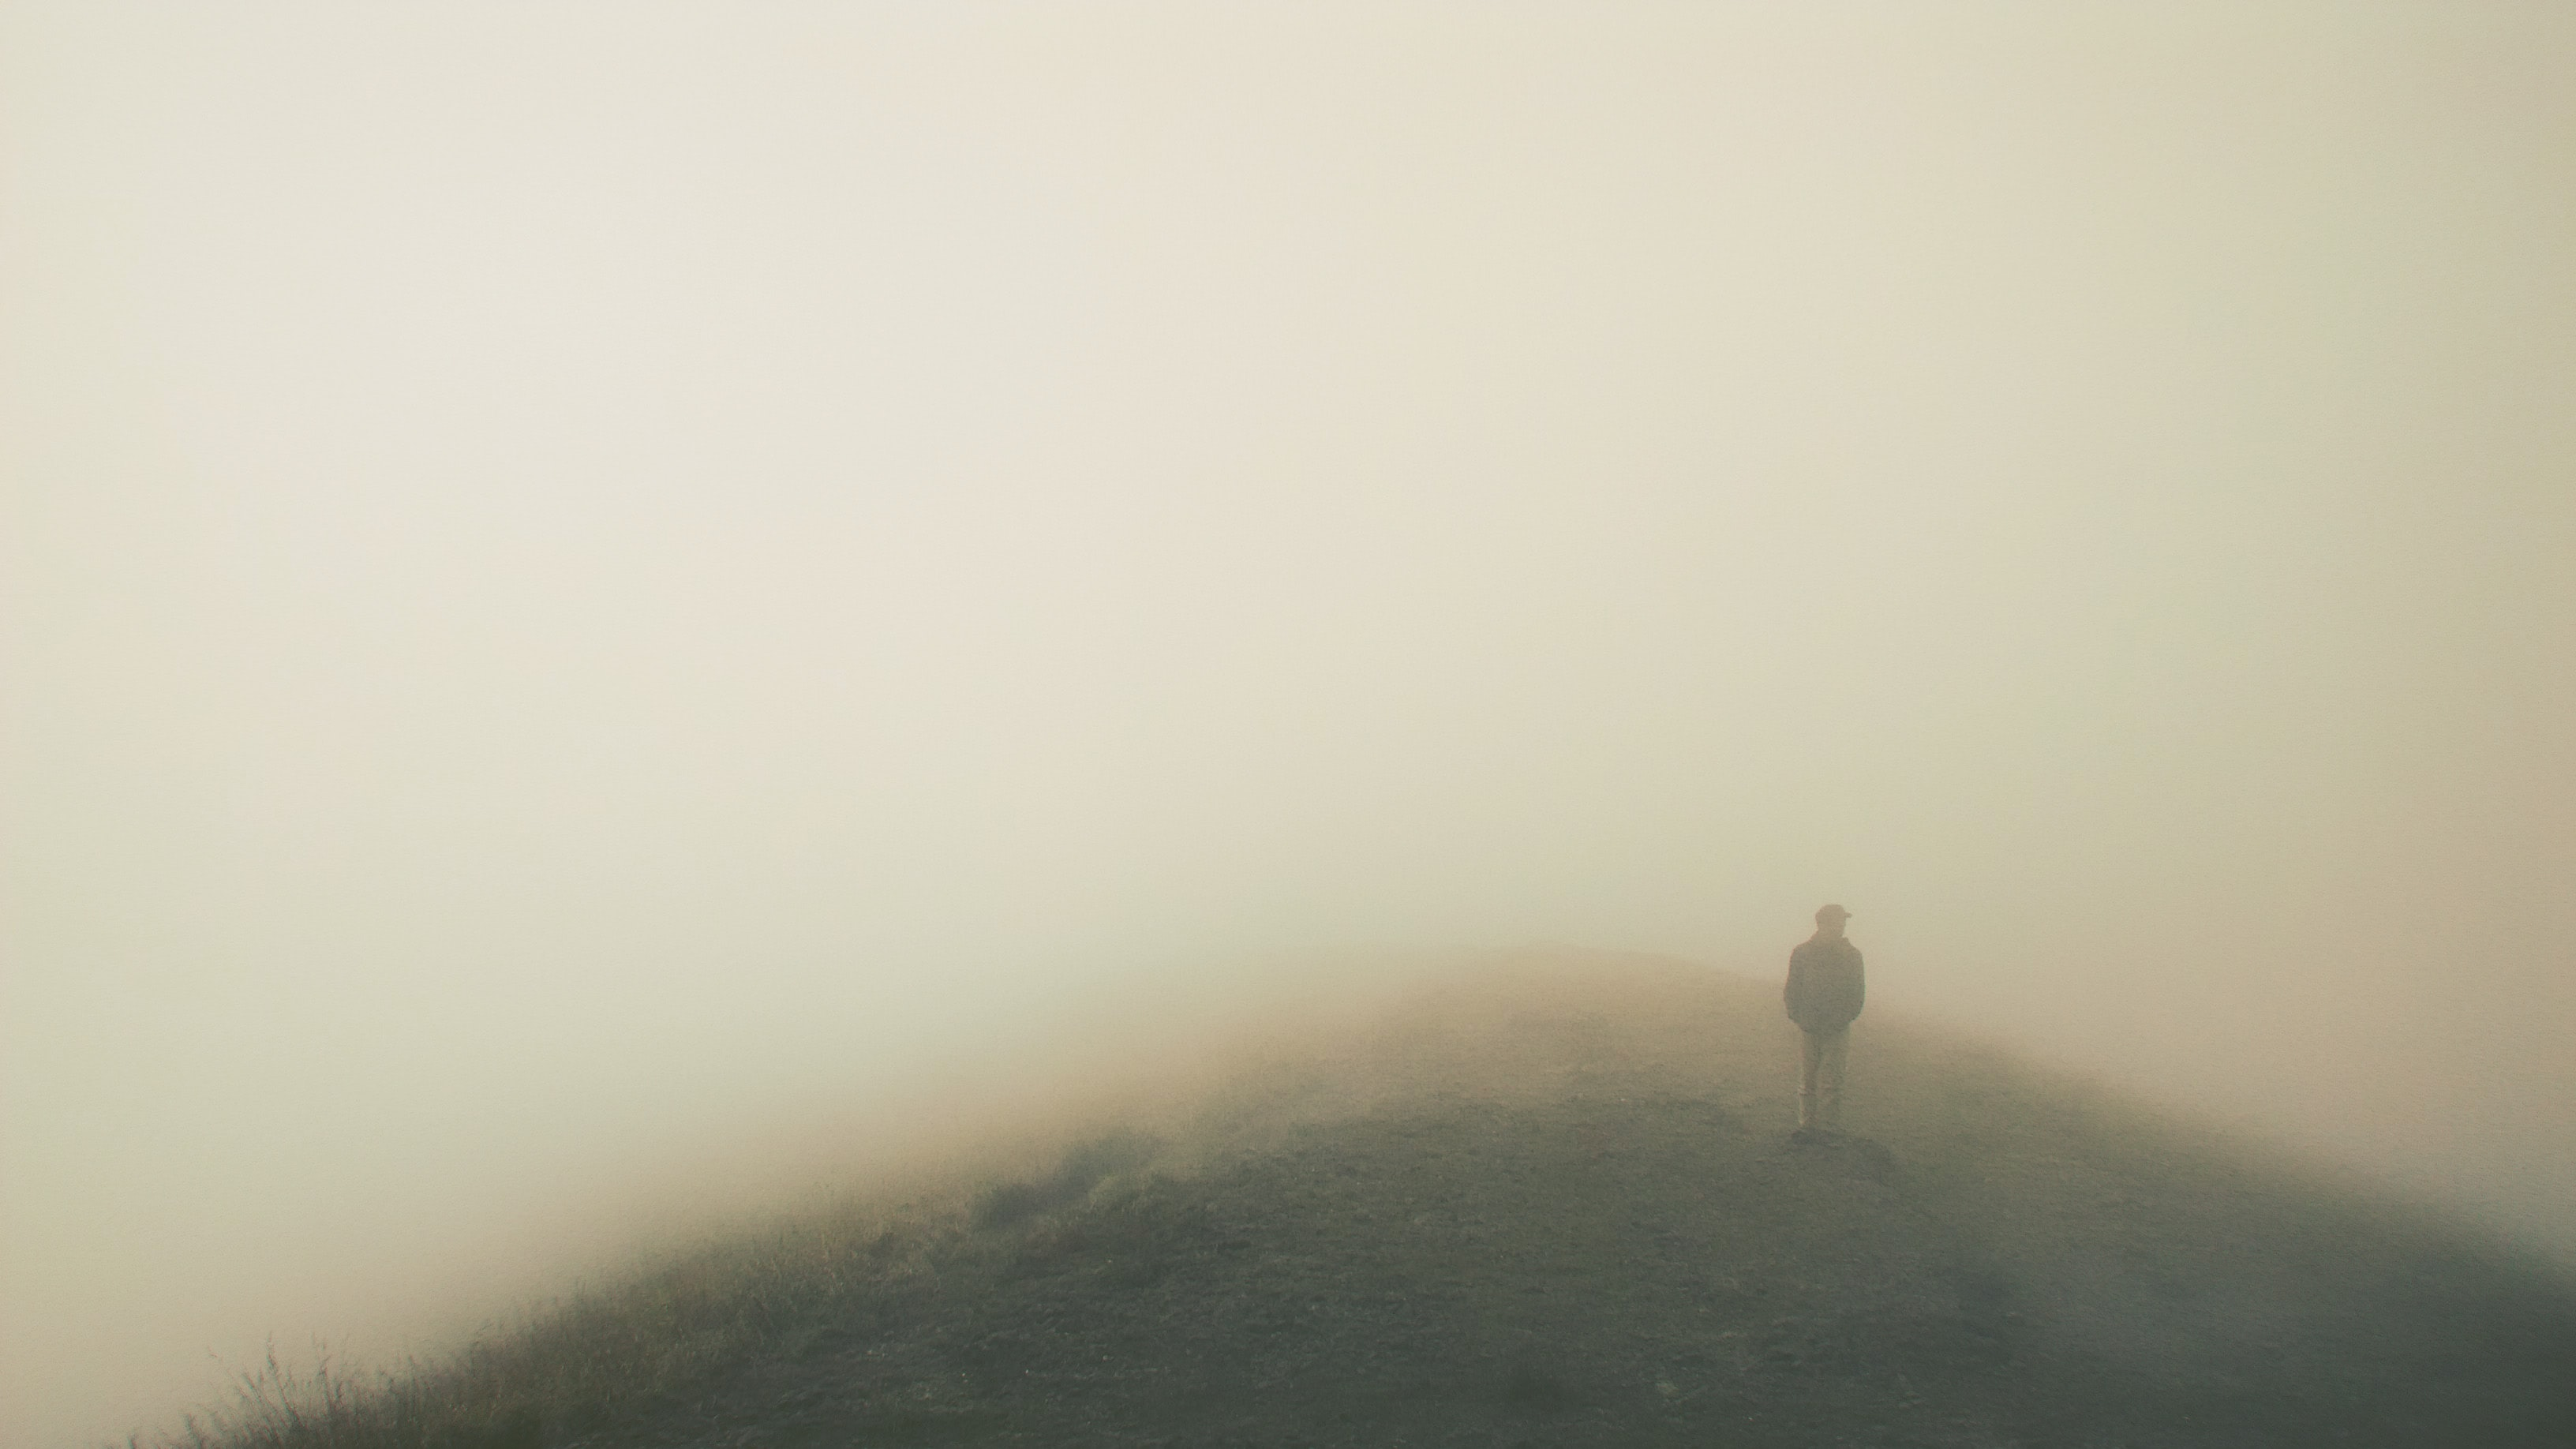 A person standing inside of a cloudy foggy area on top of Mt. Penanggungan